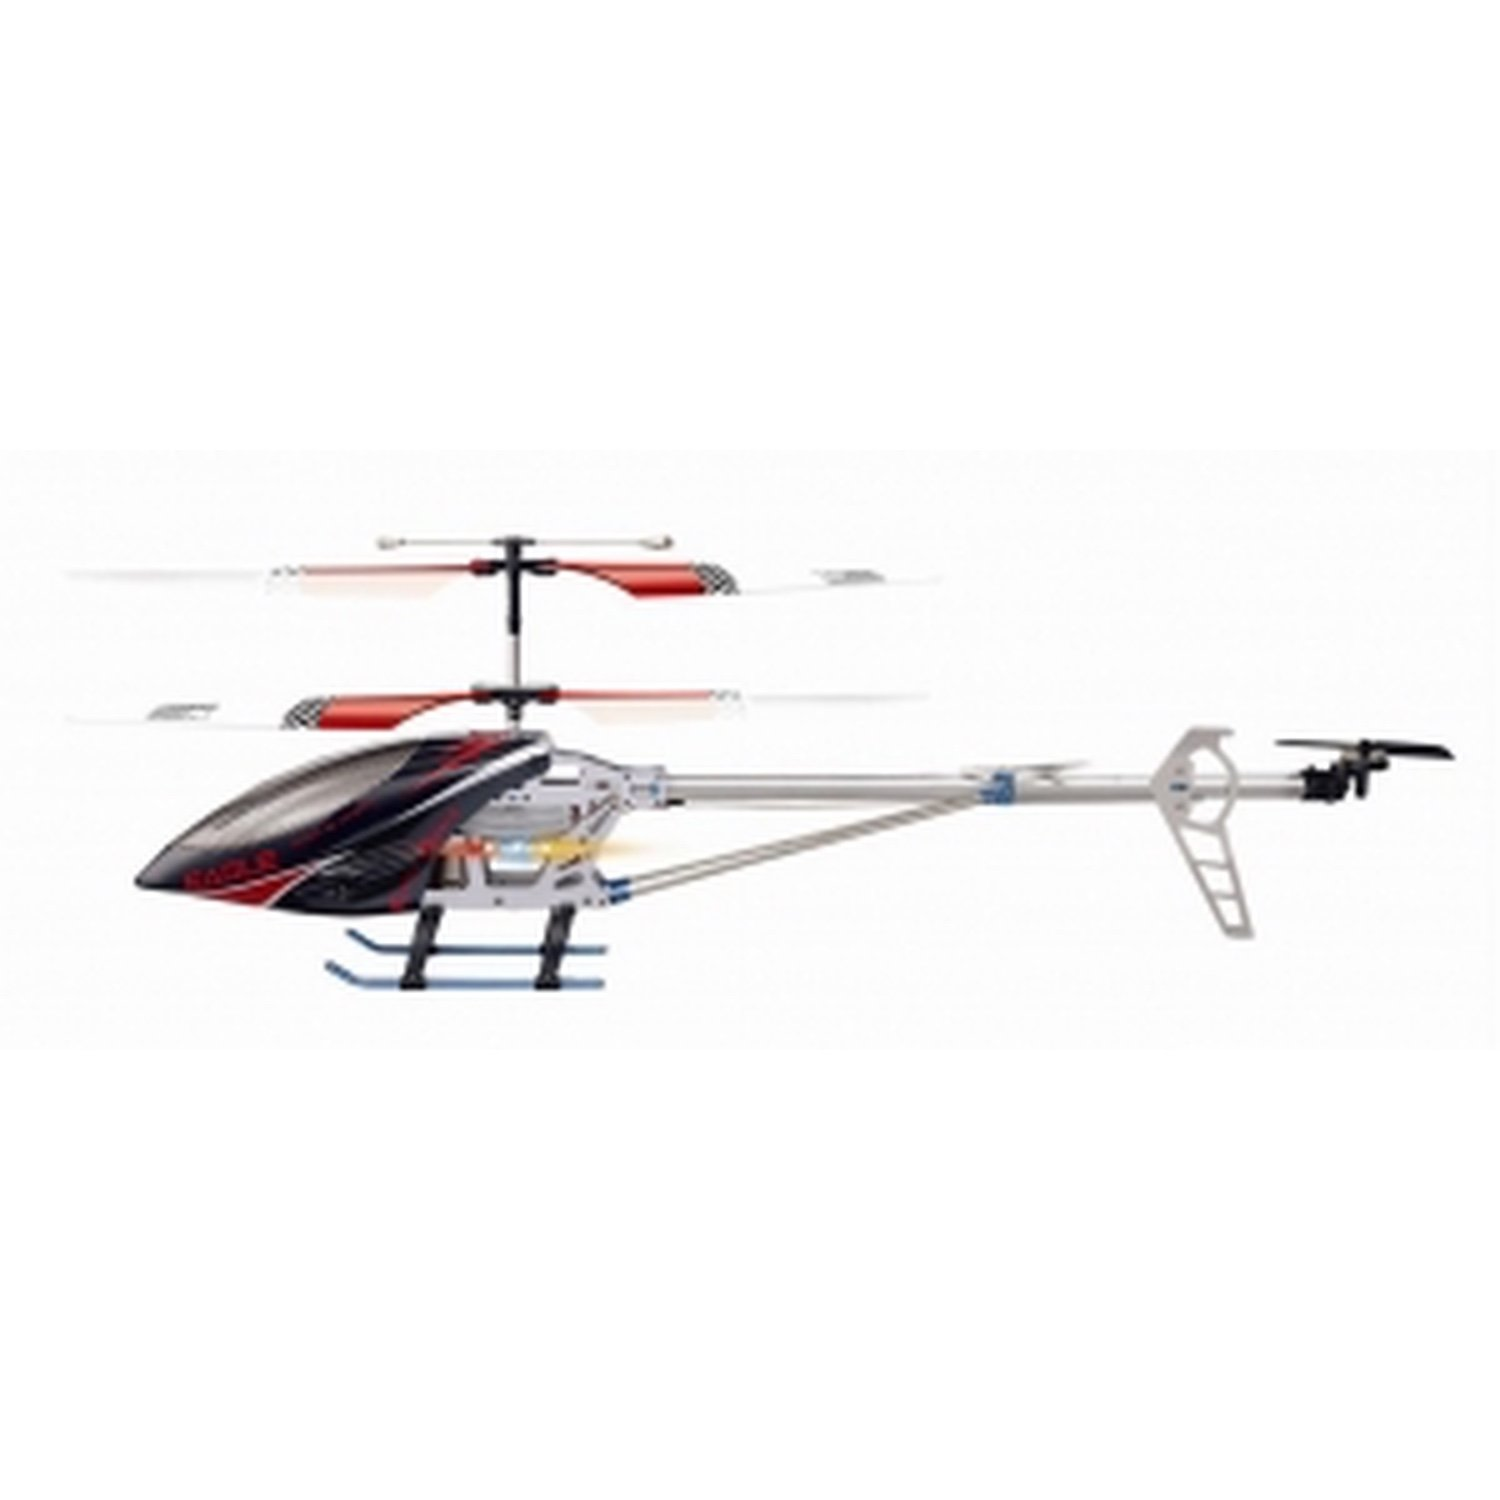 85 CM 3.5 Channel Gyroscope System Metal Frame RC Helicopter with LED lights